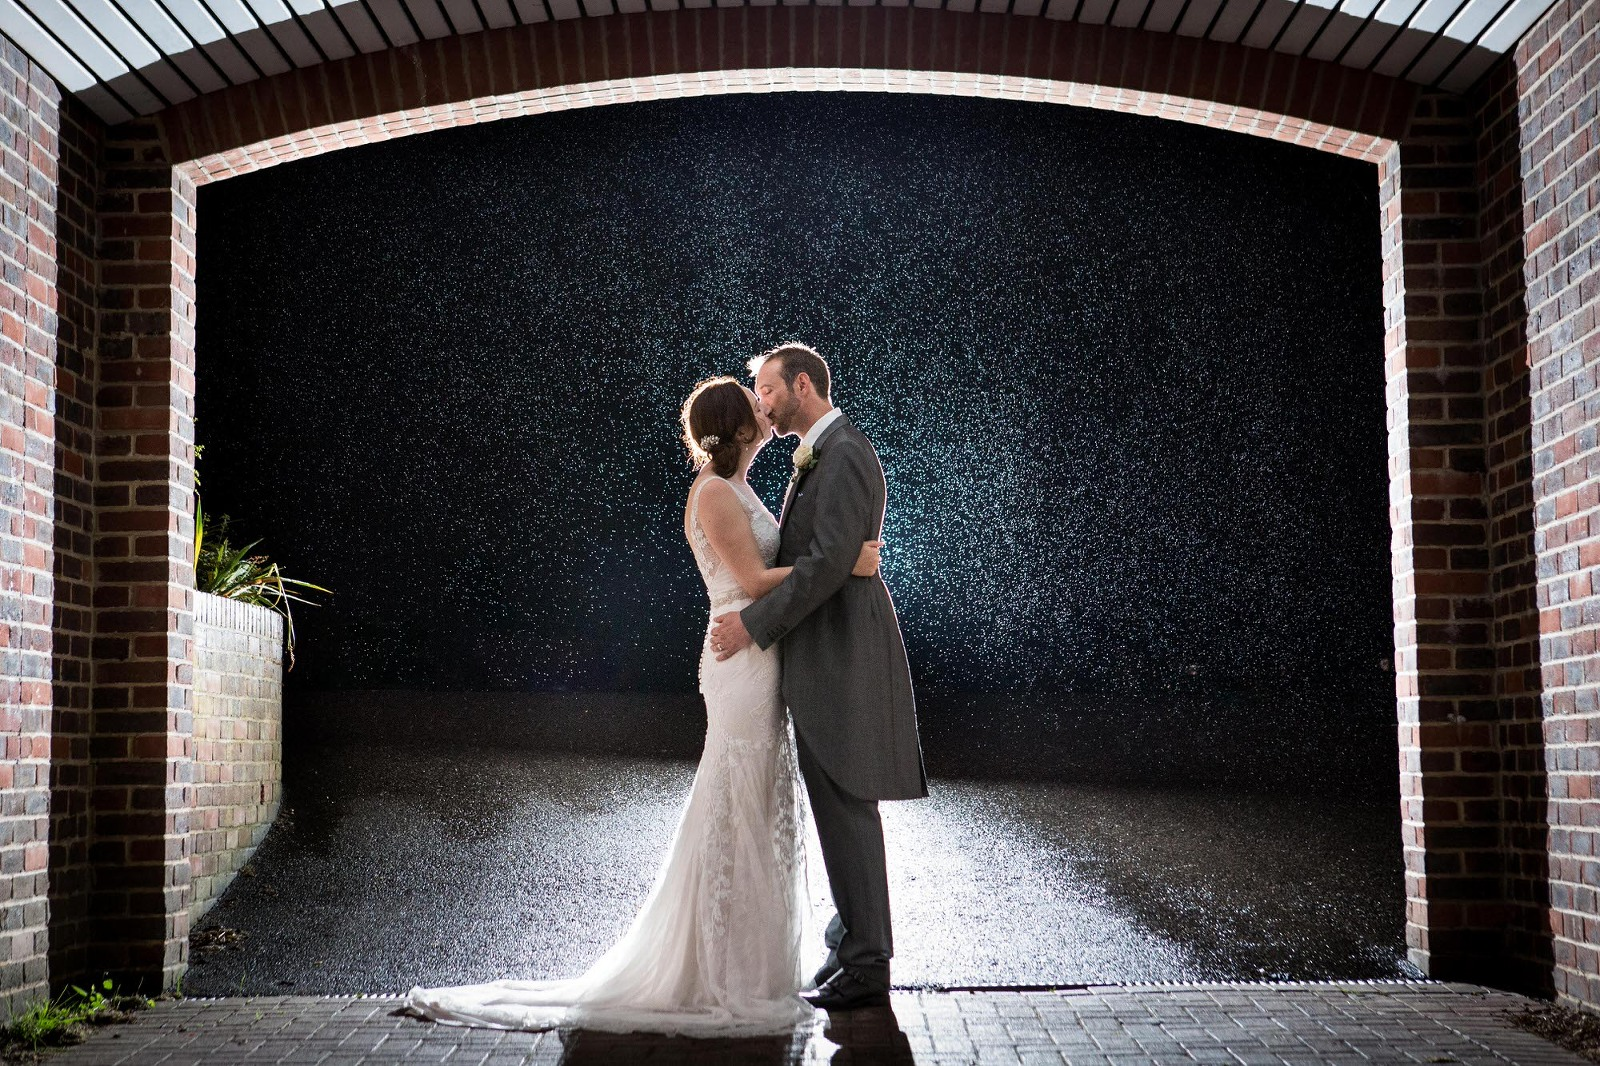 Rainy Wedding Photograph